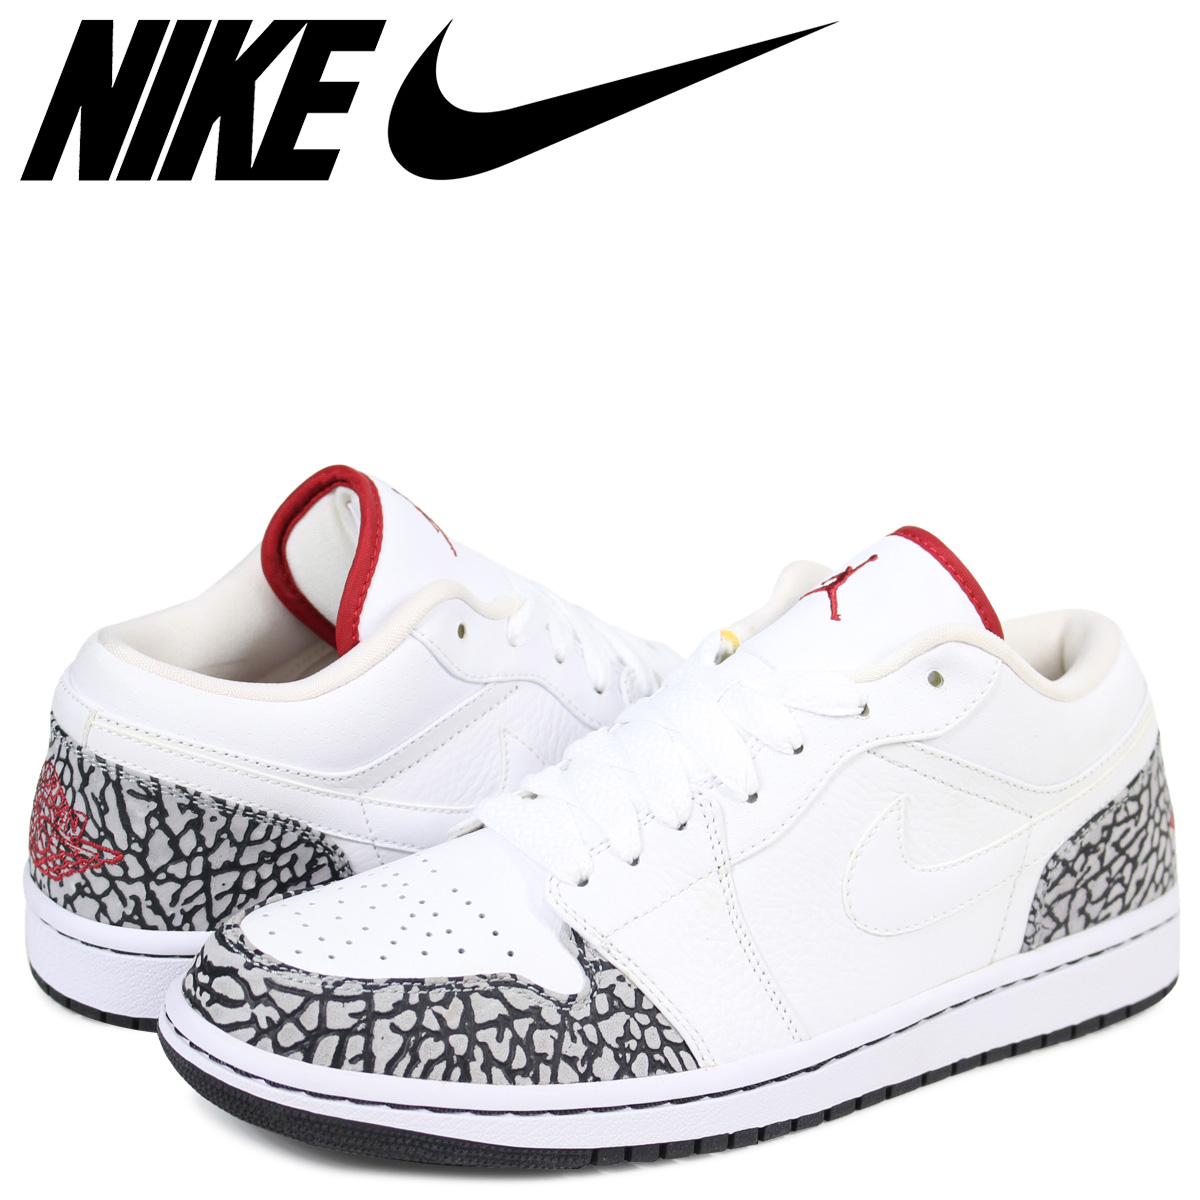 2c660053dcd95 ALLSPORTS  NIKE AIR JORDAN 1 LOW PHAT Nike Air Jordan 1 sneakers men ...